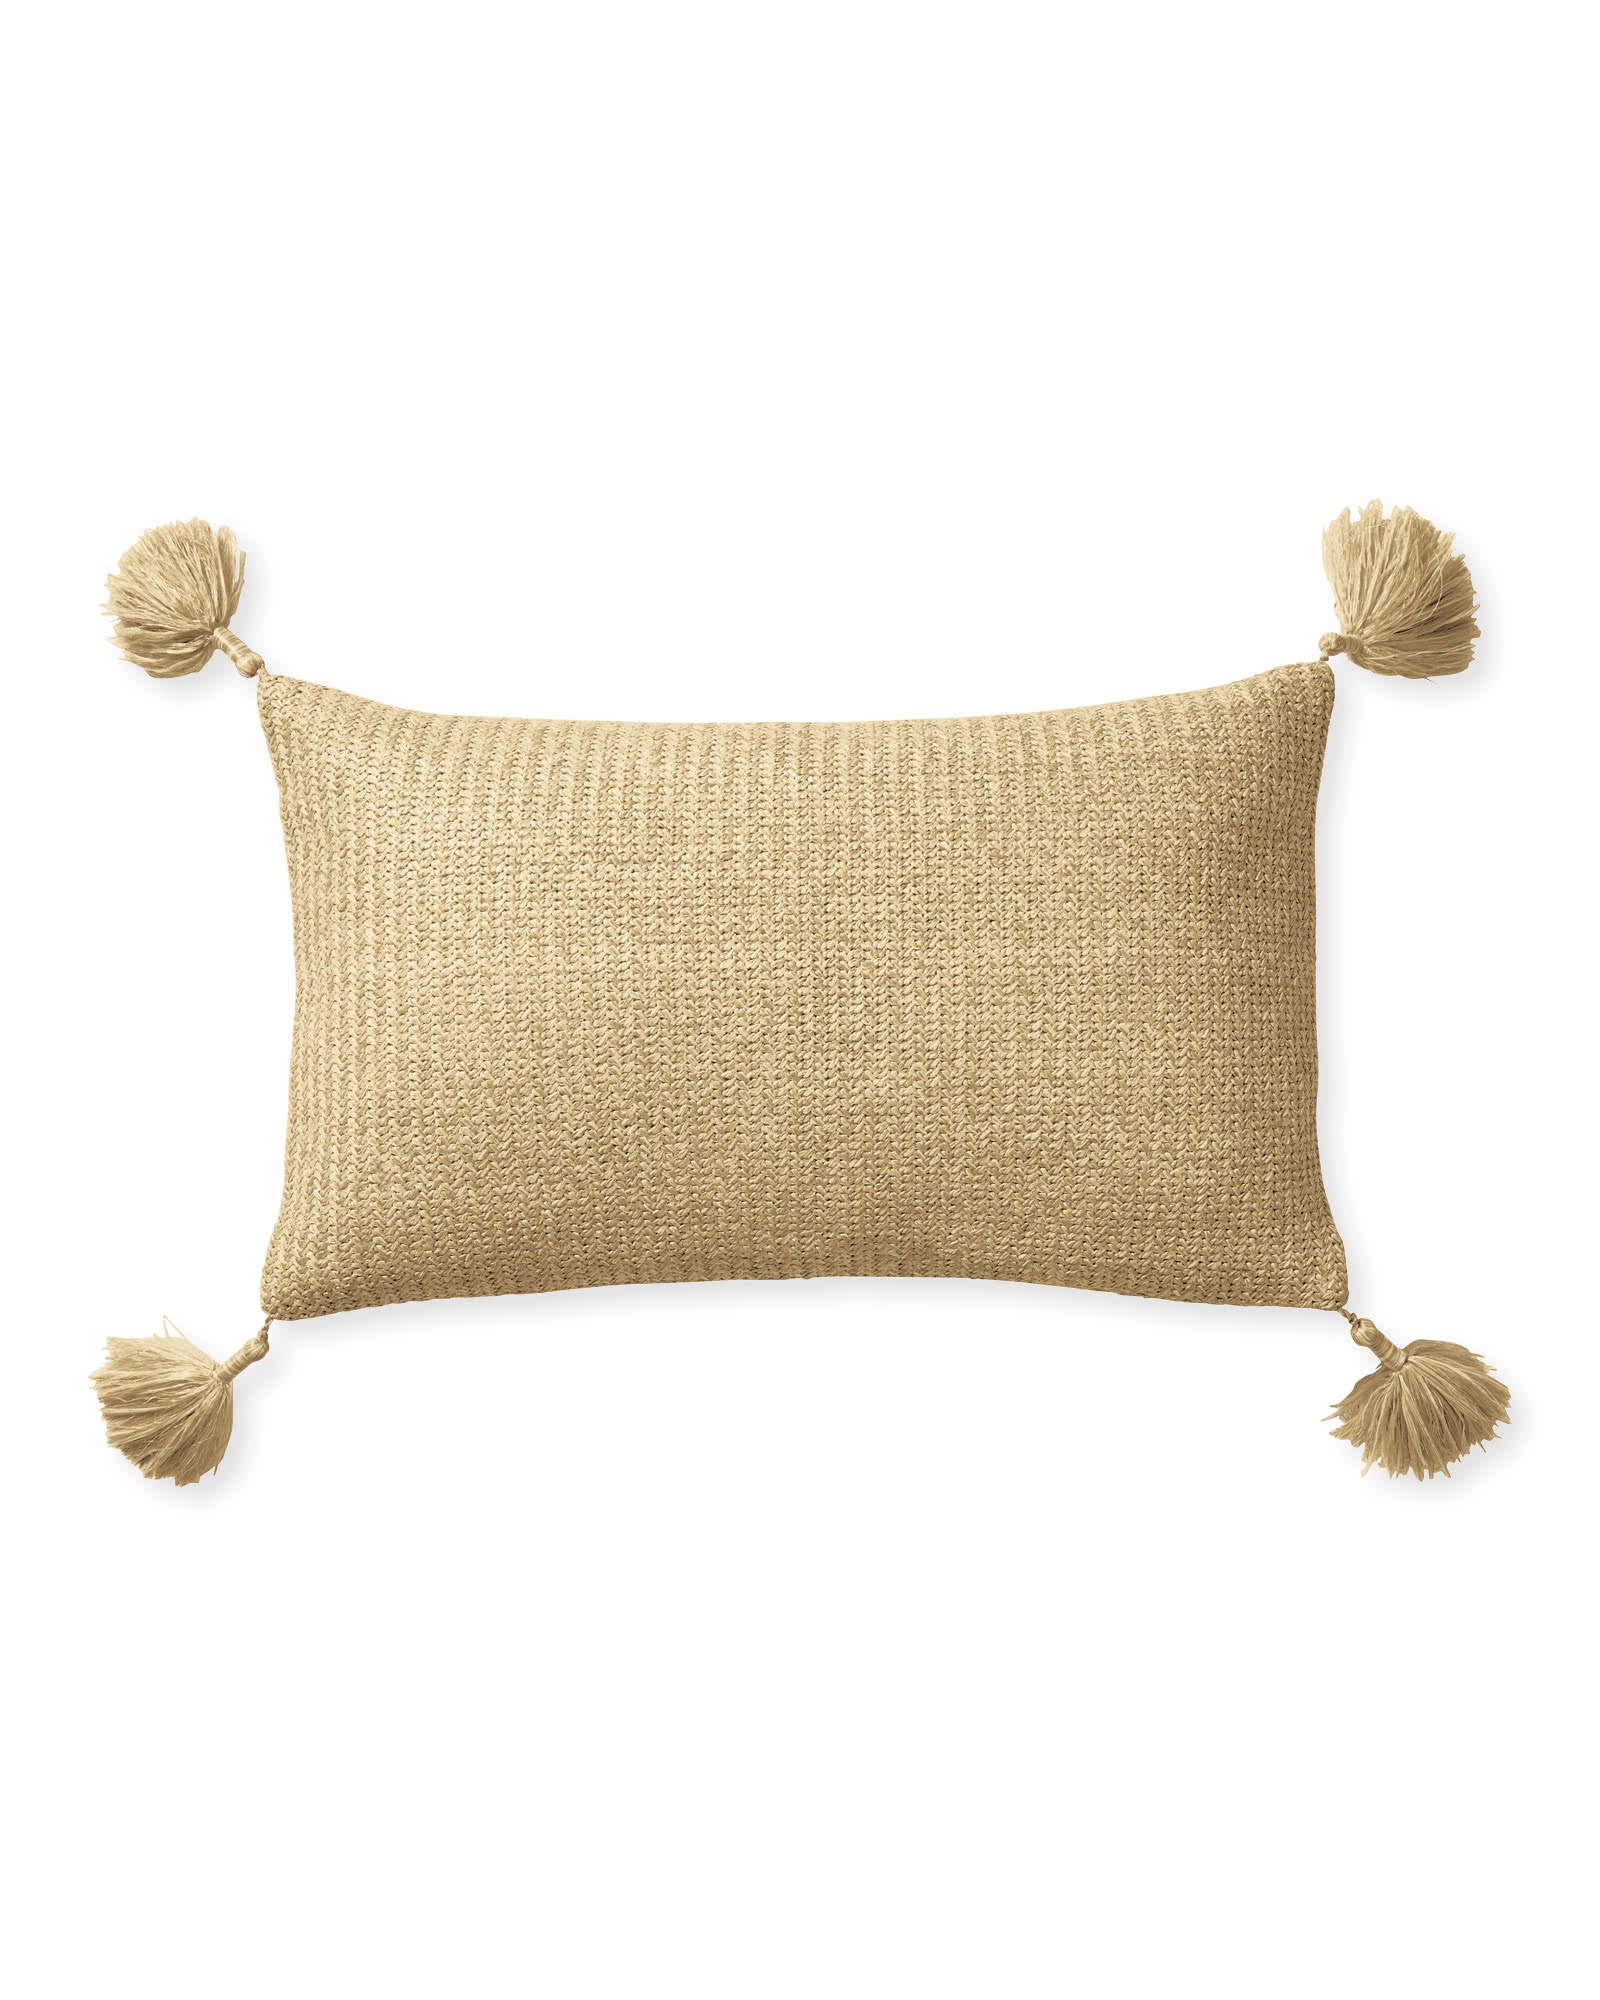 Santa Cruz Pillow Cover,